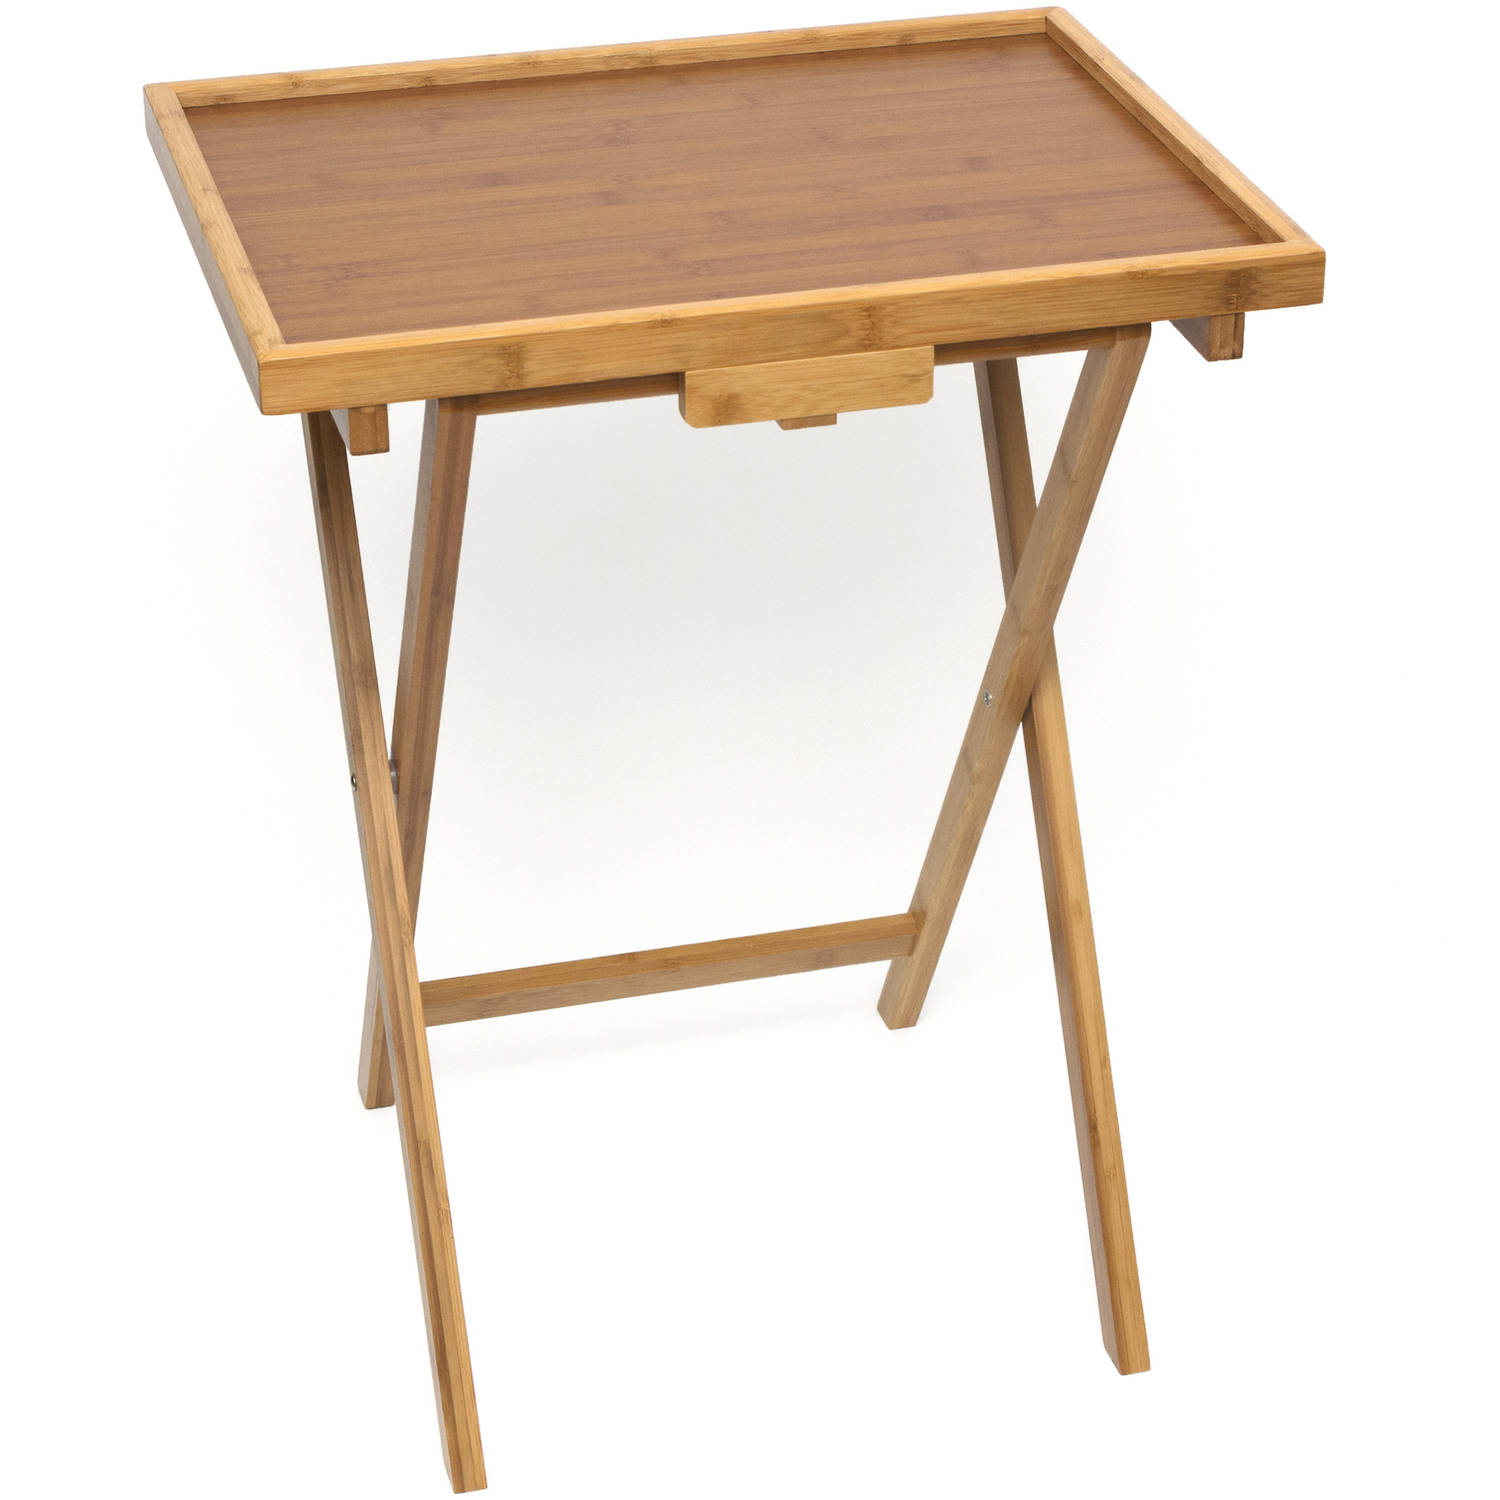 Lipper Bamboo Snack Table with Lip